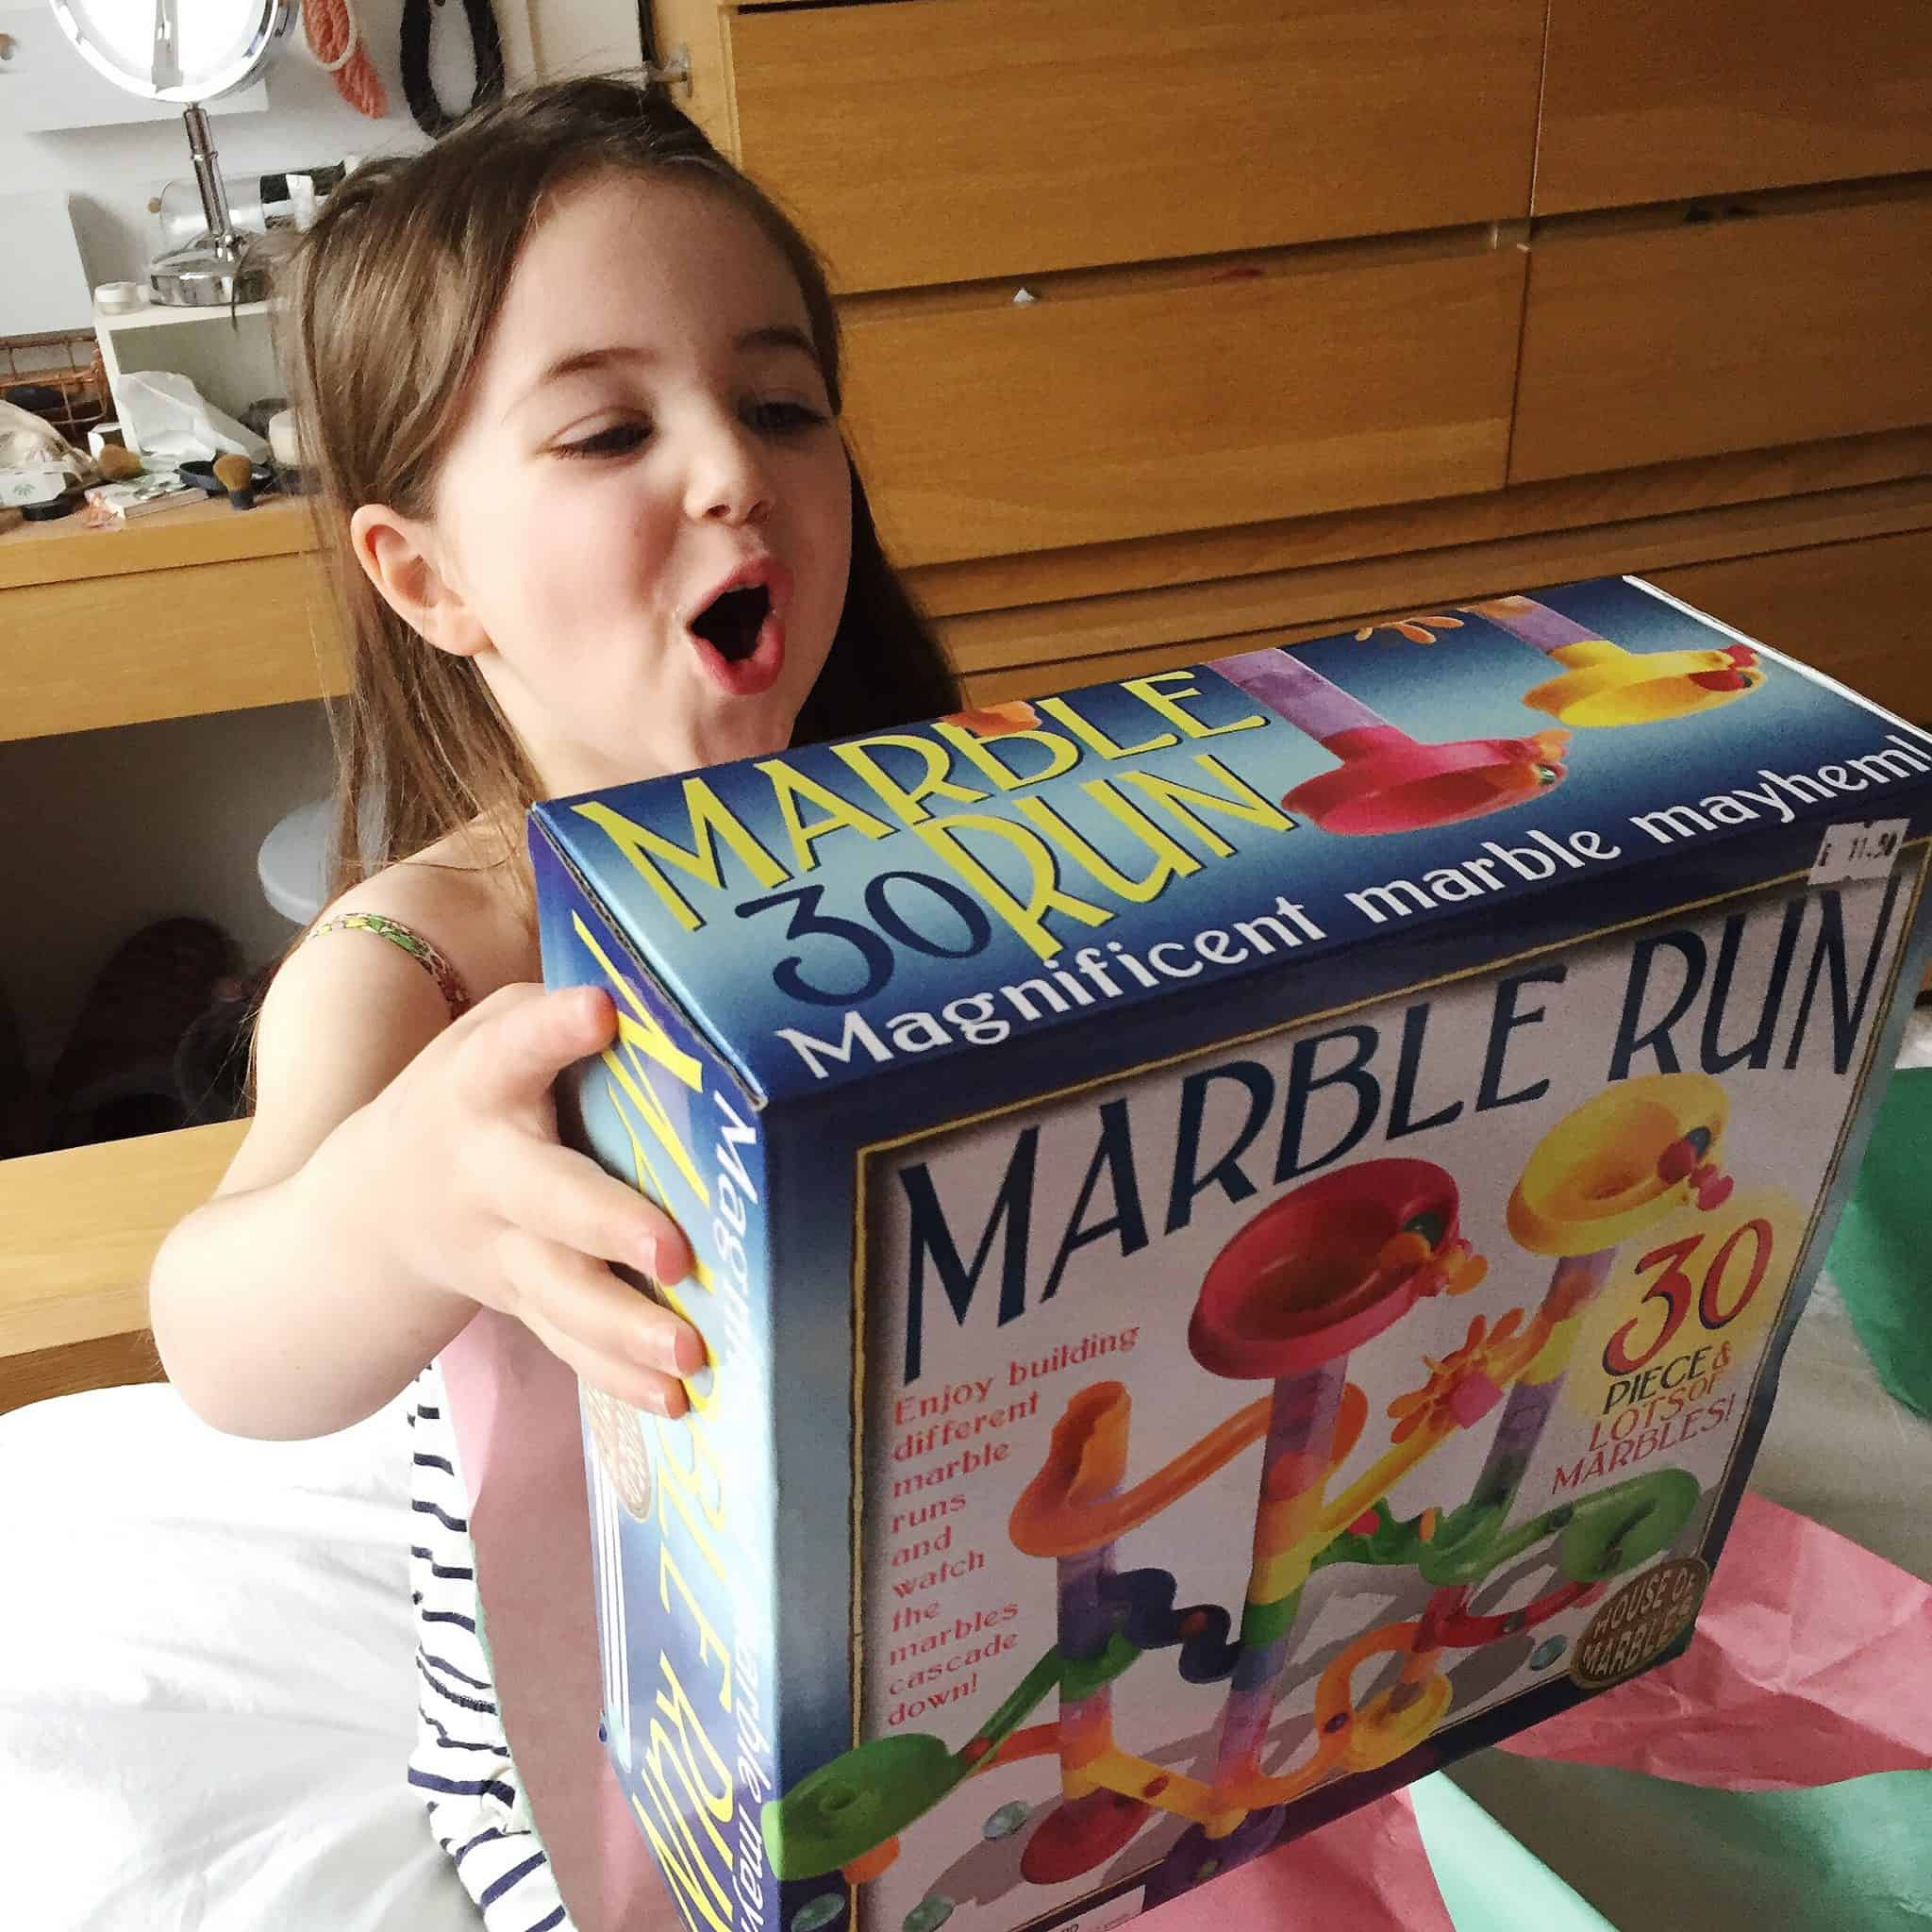 Thea on her 4th birthday opening her marble run